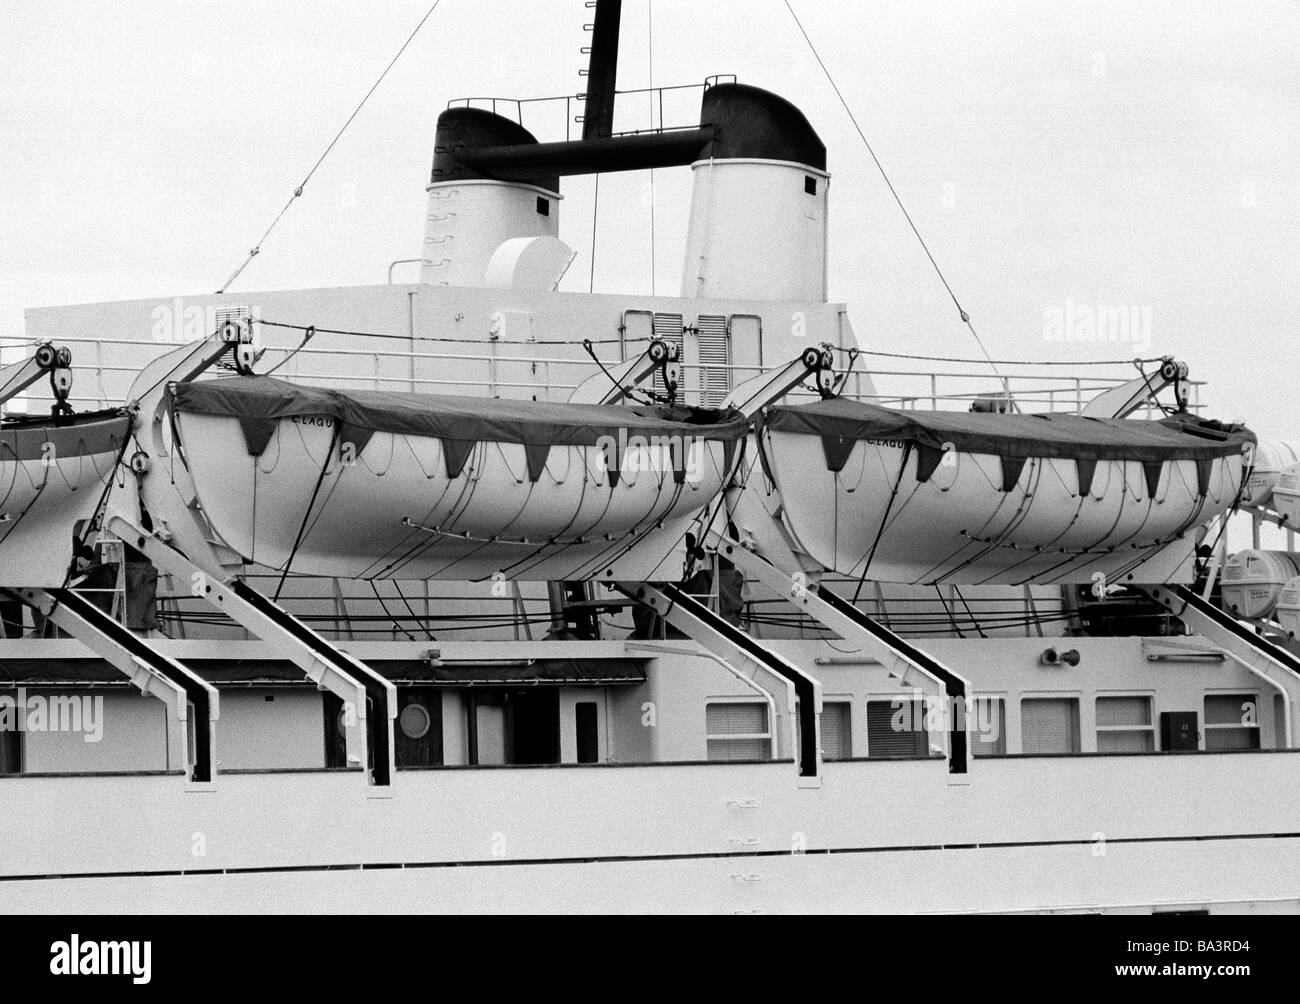 Eighties, black and white photo, travel, holidays, safety, lifeboats on an ocean liner, seaport of Santa Cruz, Spain, - Stock Image